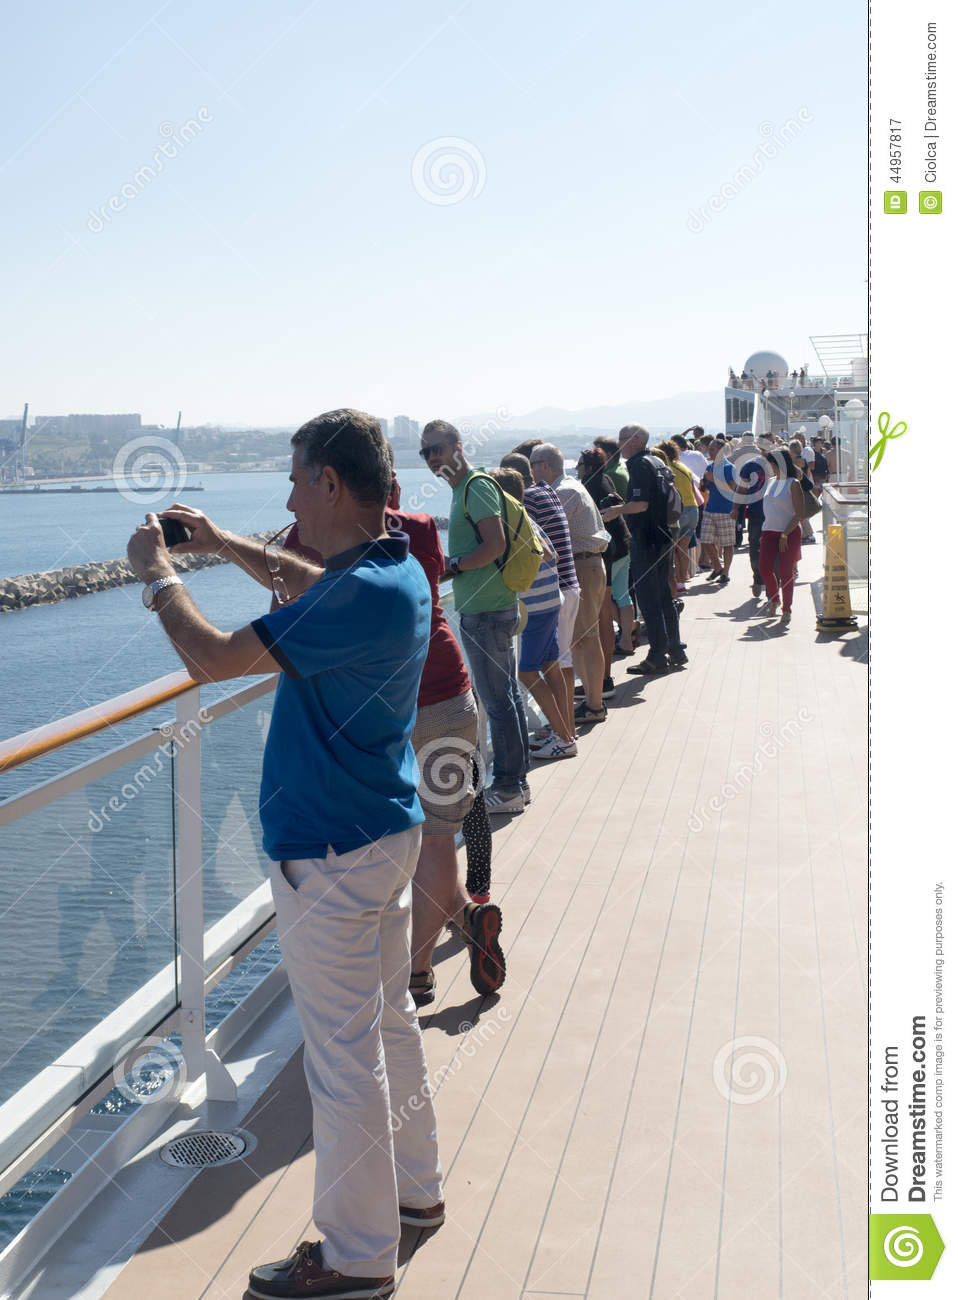 People On A Cruise Ship Deck Editorial Photography Image